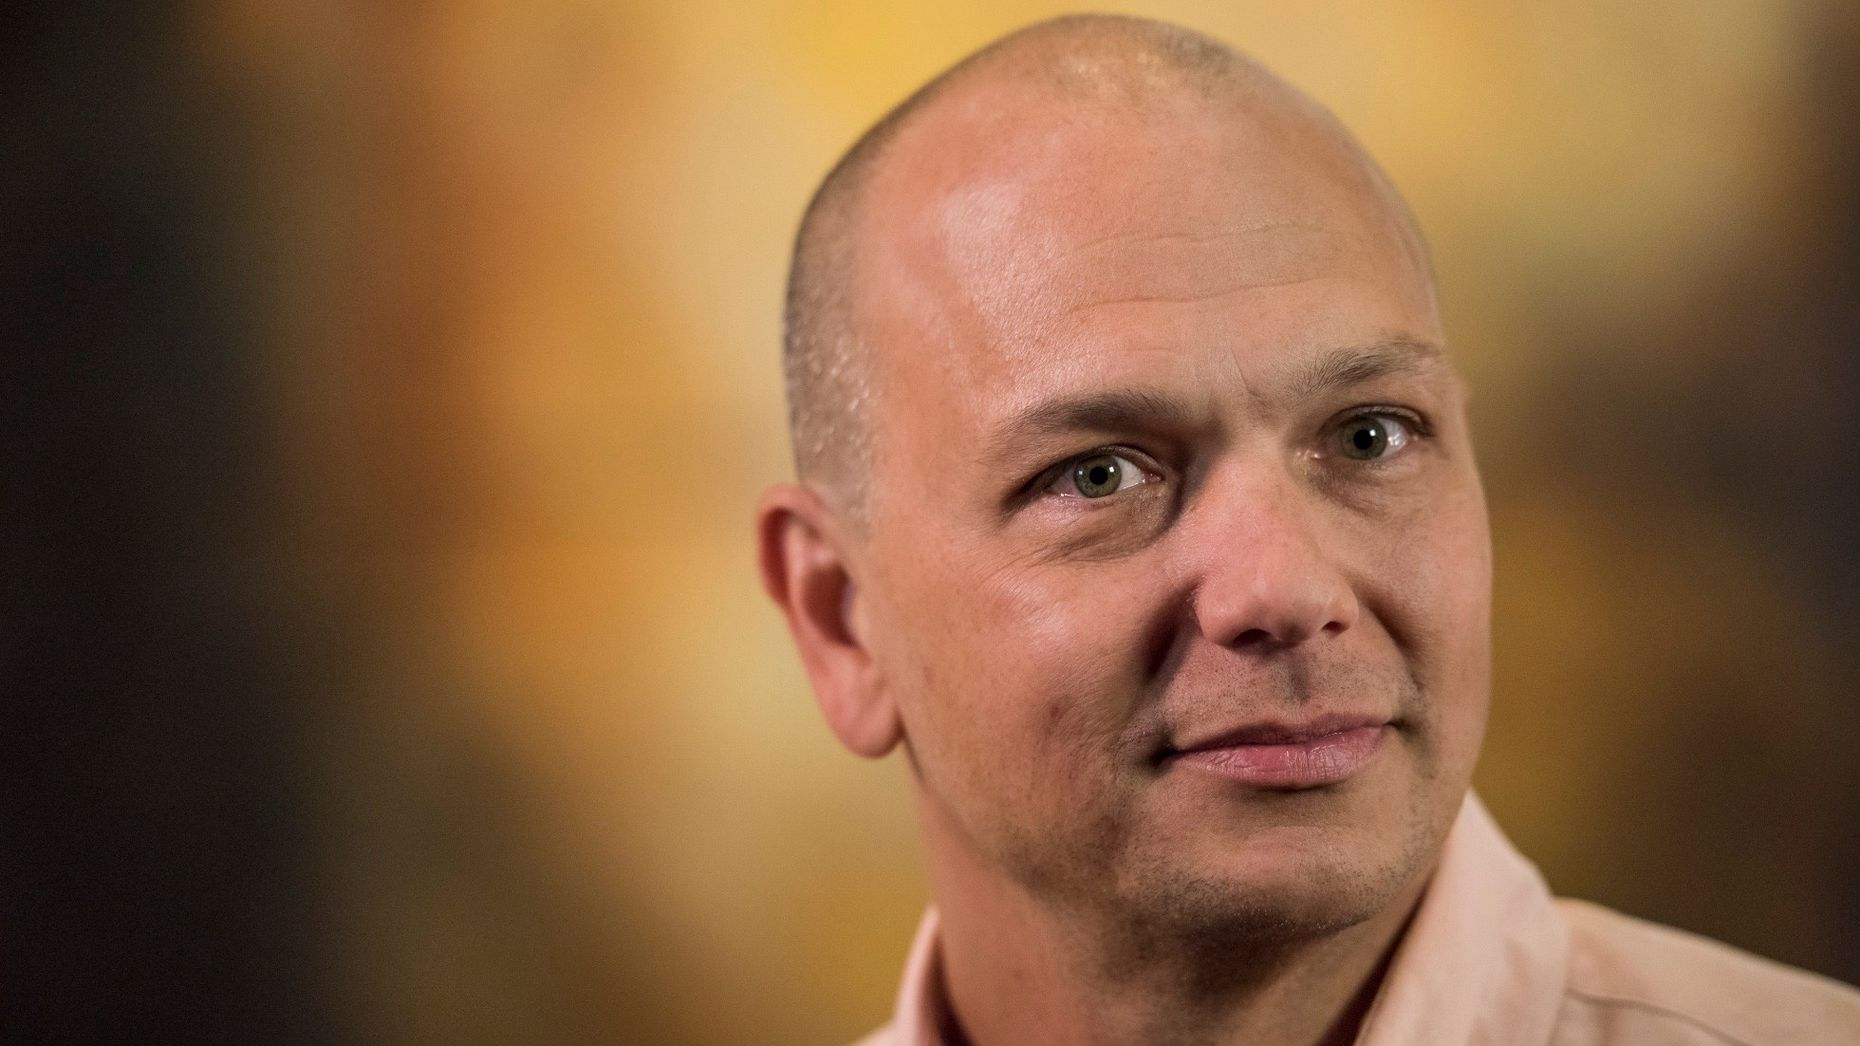 Nest CEO Tony Fadell. Photo by Bloomberg.